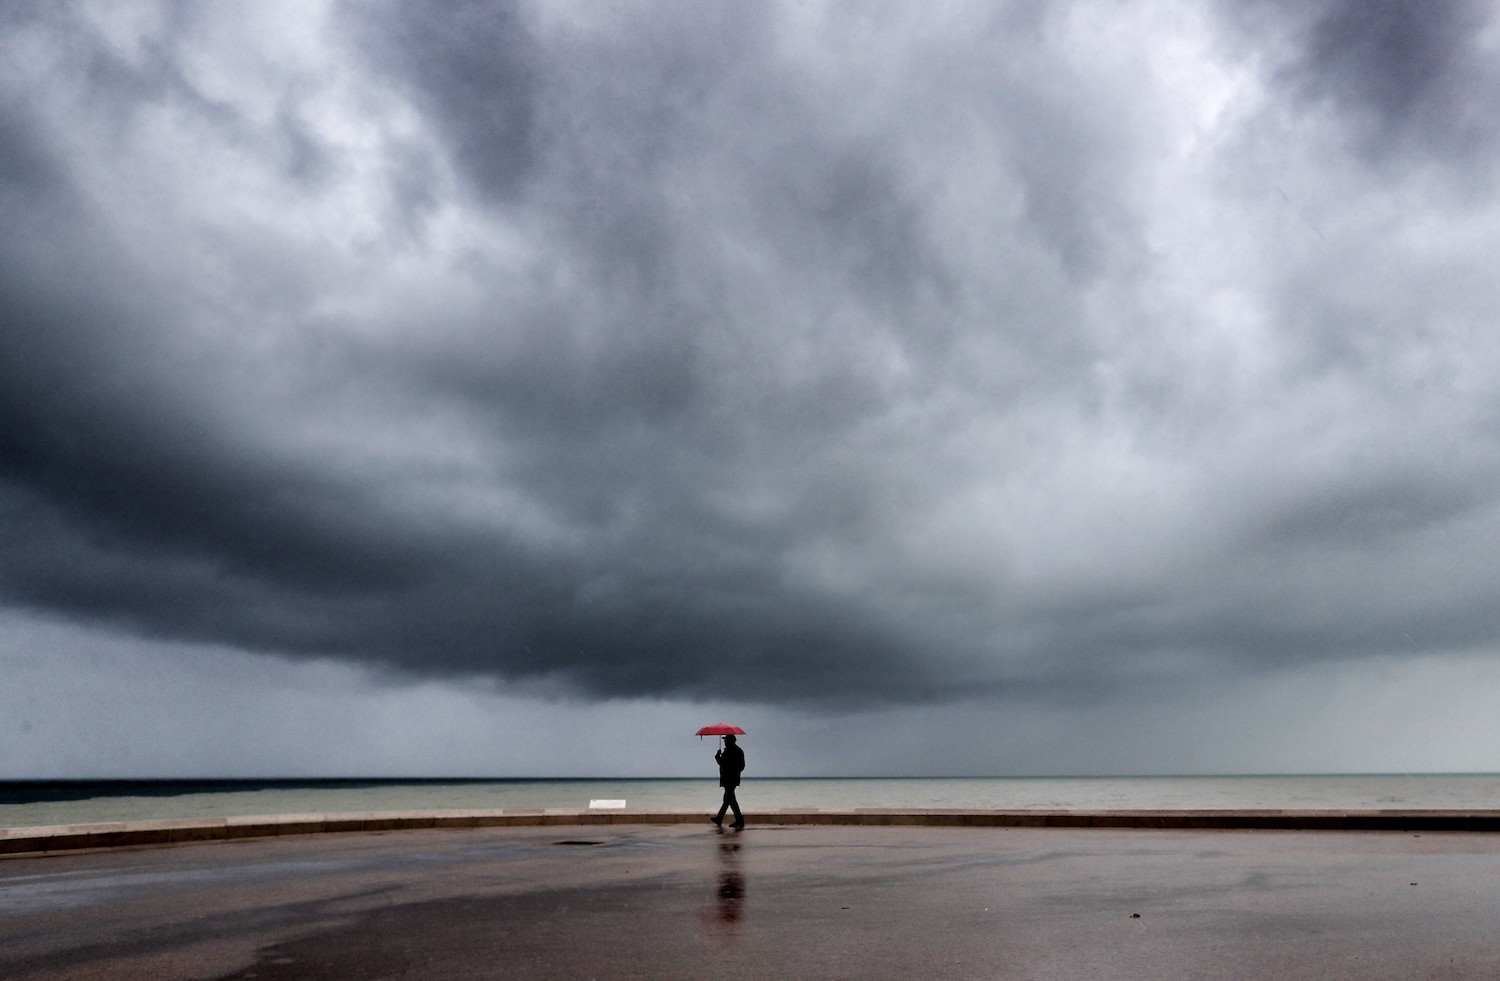 A man walks as a storm is approaching, on April 12, 2018 on the French riviera city of Nice.   / AFP PHOTO / VALERY HACHE        (Photo credit should read VALERY HACHE/AFP/Getty Images)